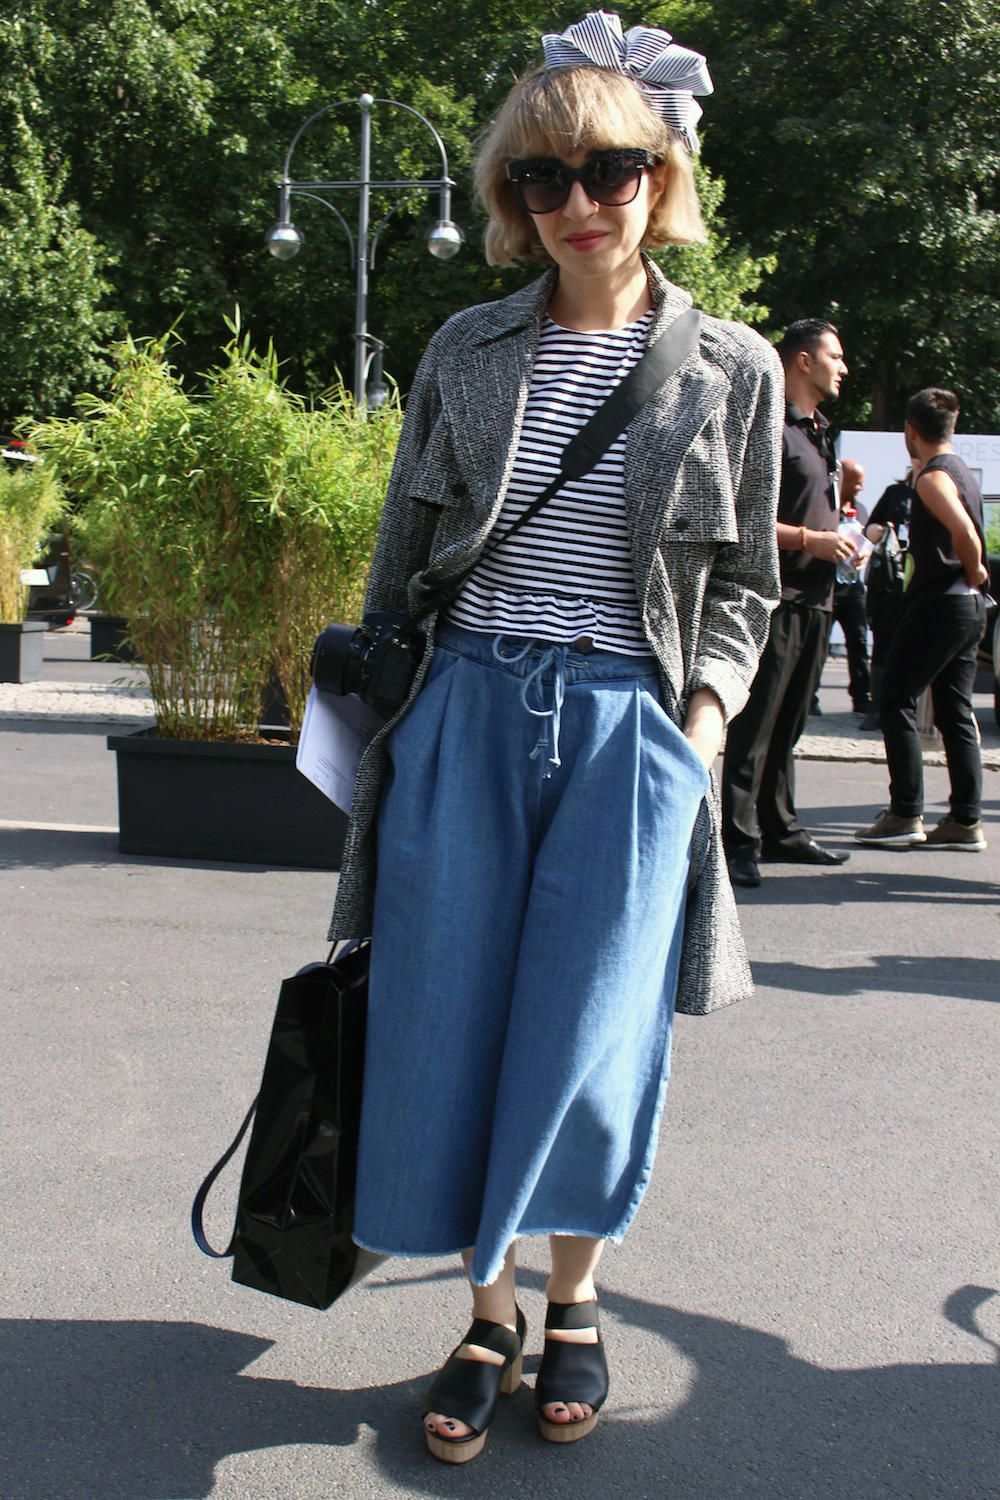 Berlin Fashion Week Street Style Was About Easy Shapes and Complex Patterns - Fashionista